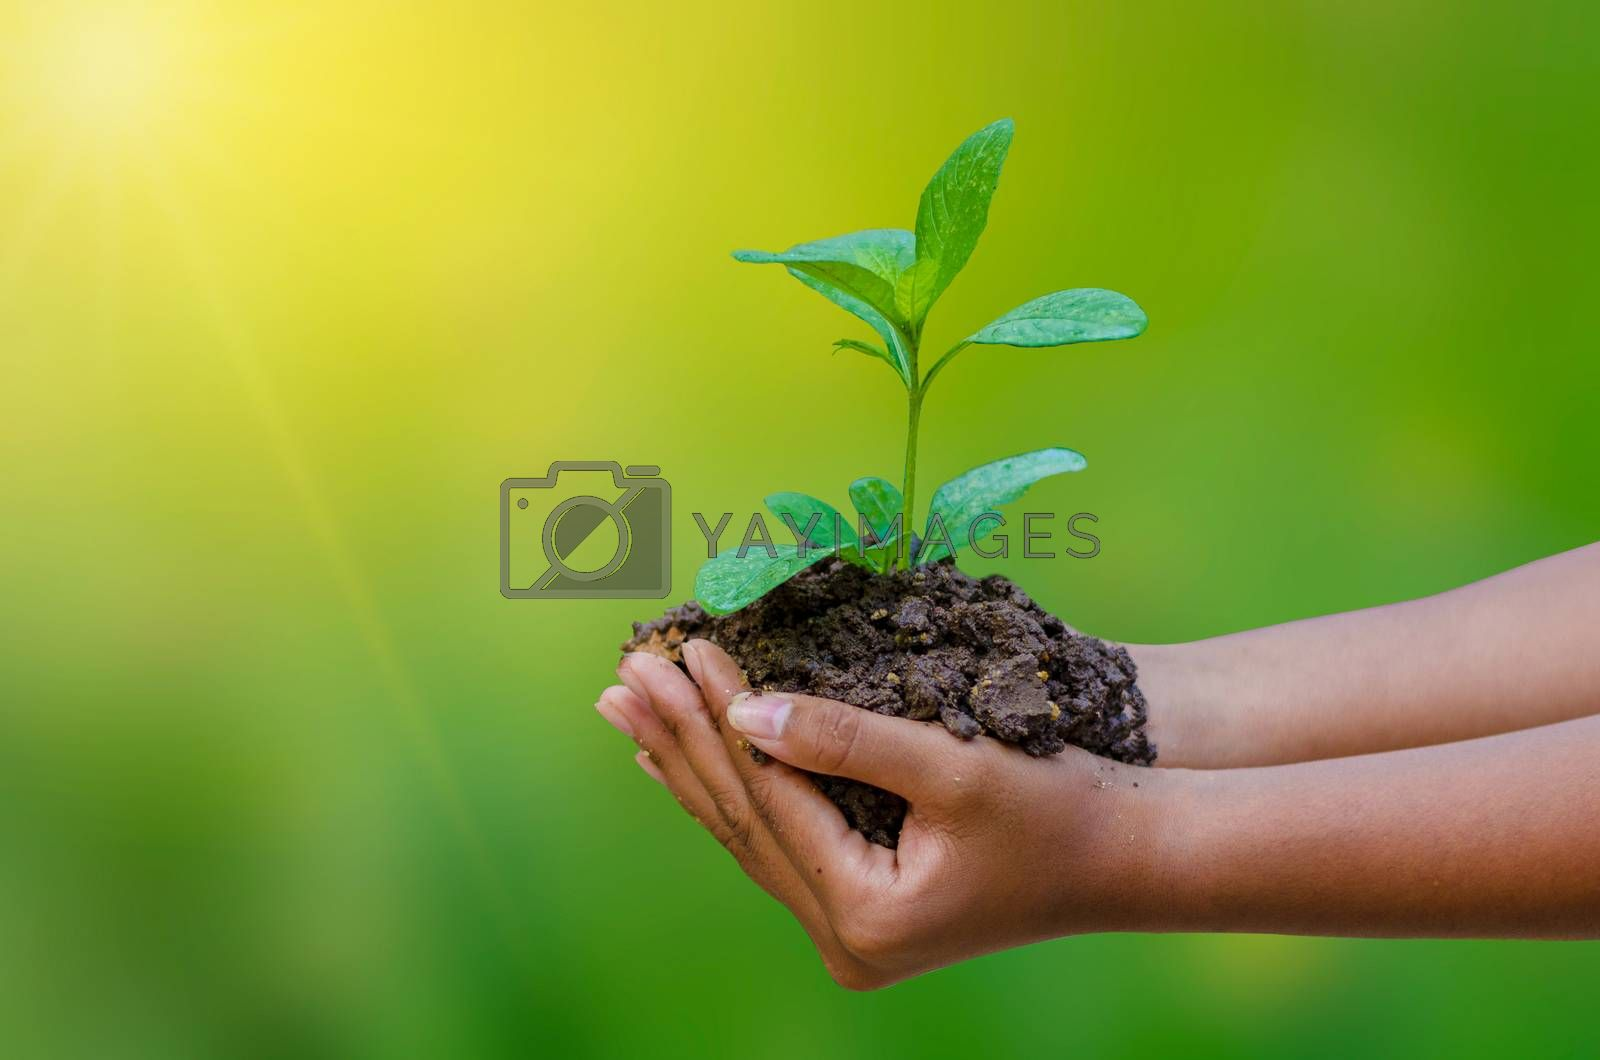 In the hands of trees growing seedlings bokeh green background Female hand holding tree on nature field grass Forest conservation concept by Sarayut